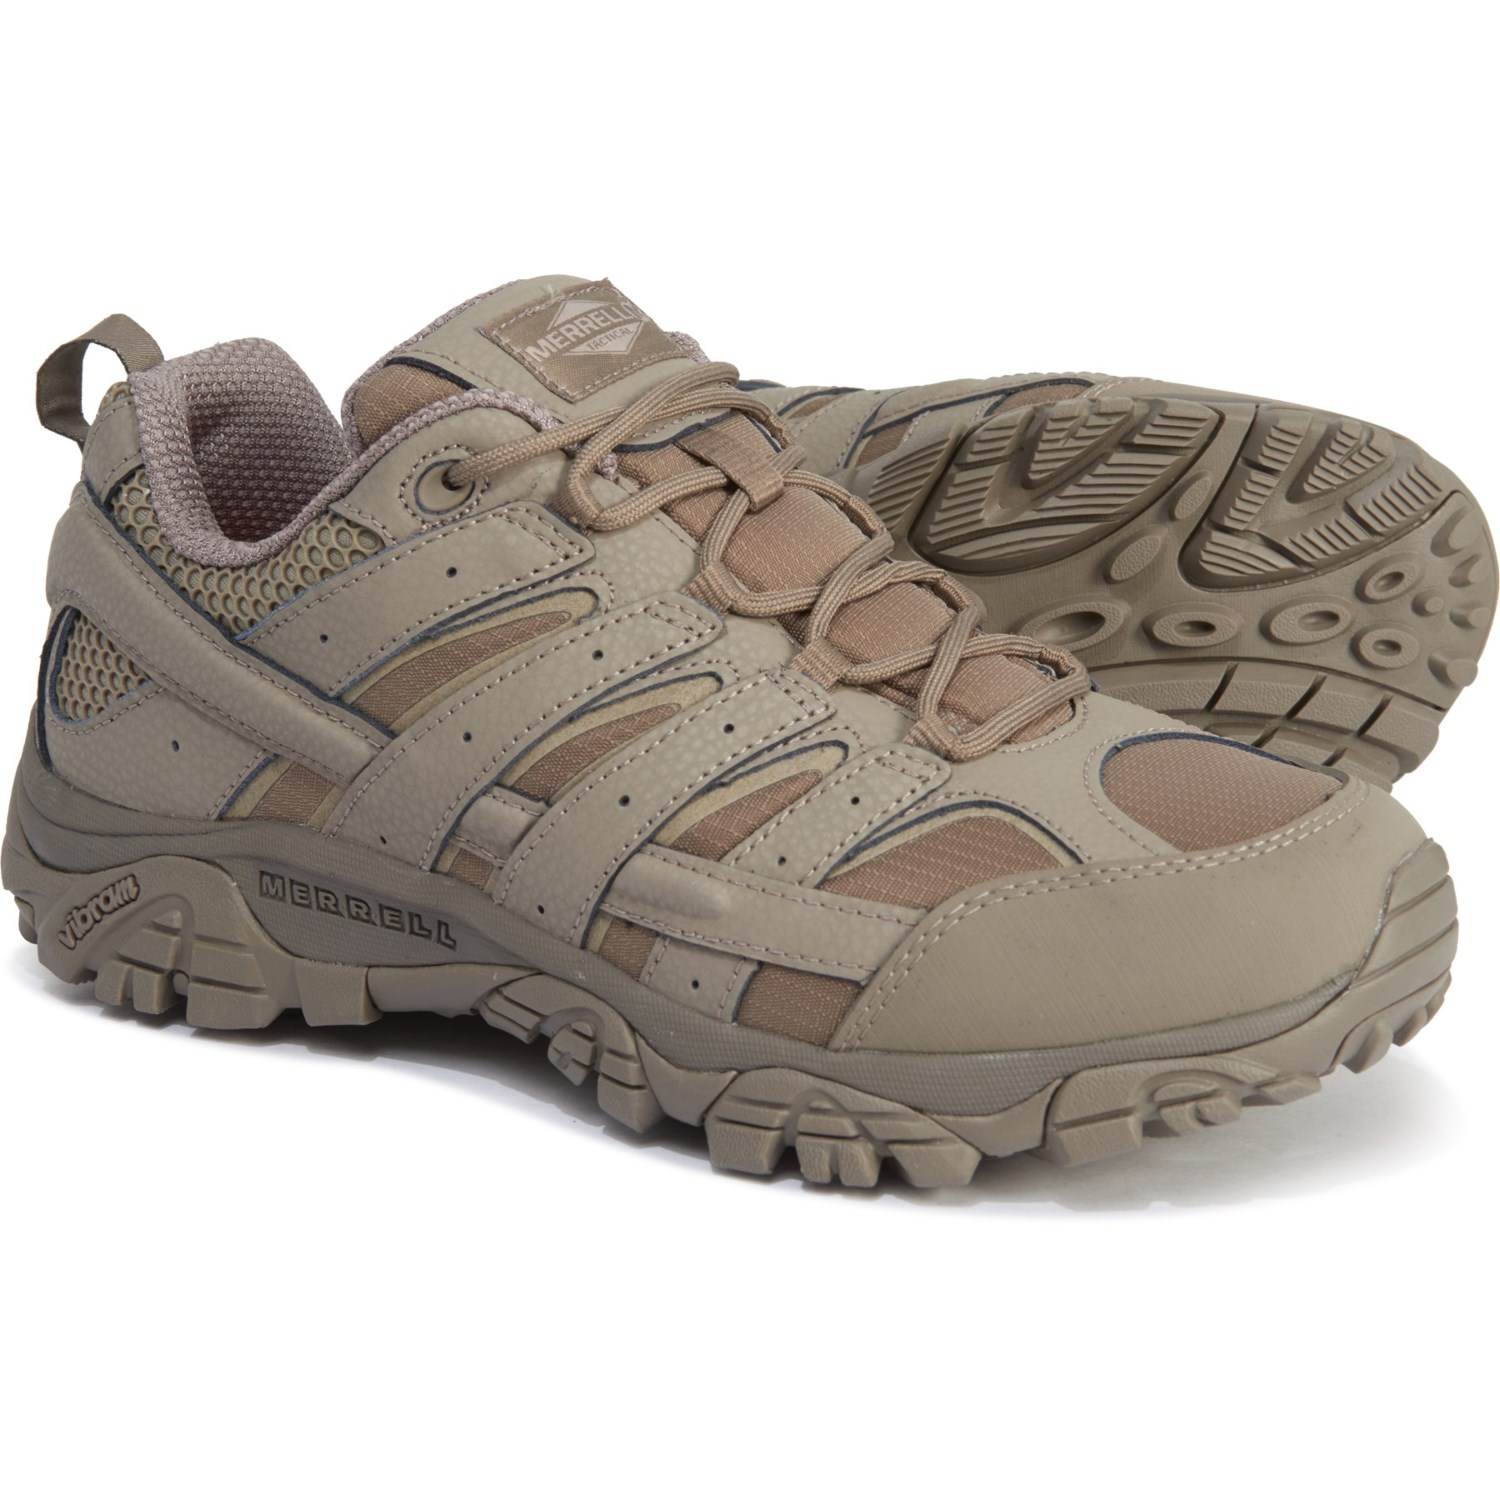 fe0050b7 Merrell Moab 2 Tactical Shoes (For Men) - Save 40%